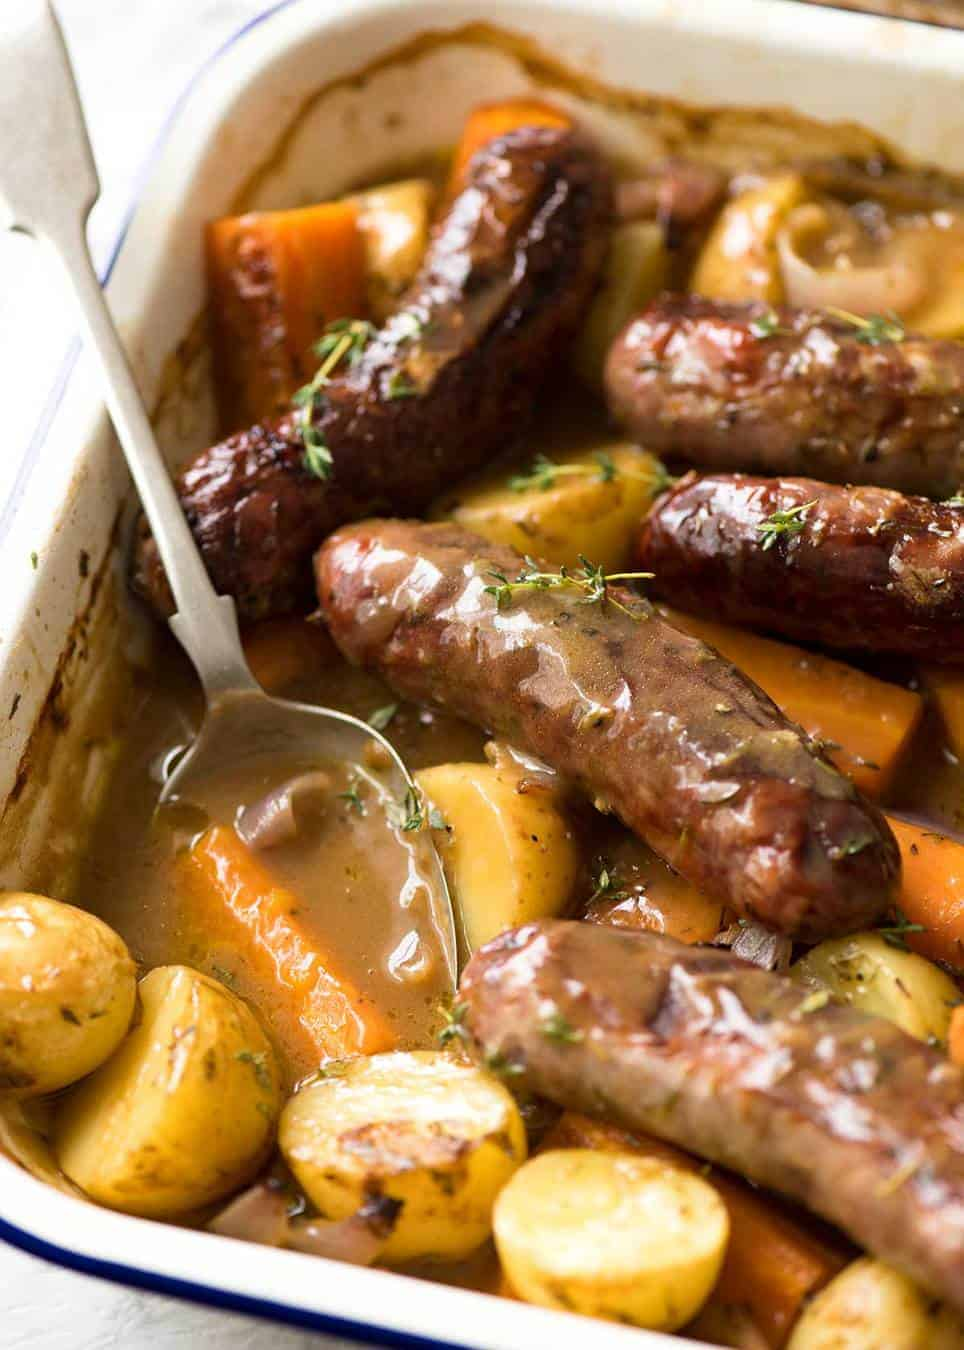 A Sausage Bake and Vegetables WITH Gravy, all made in one pan! Yes, that